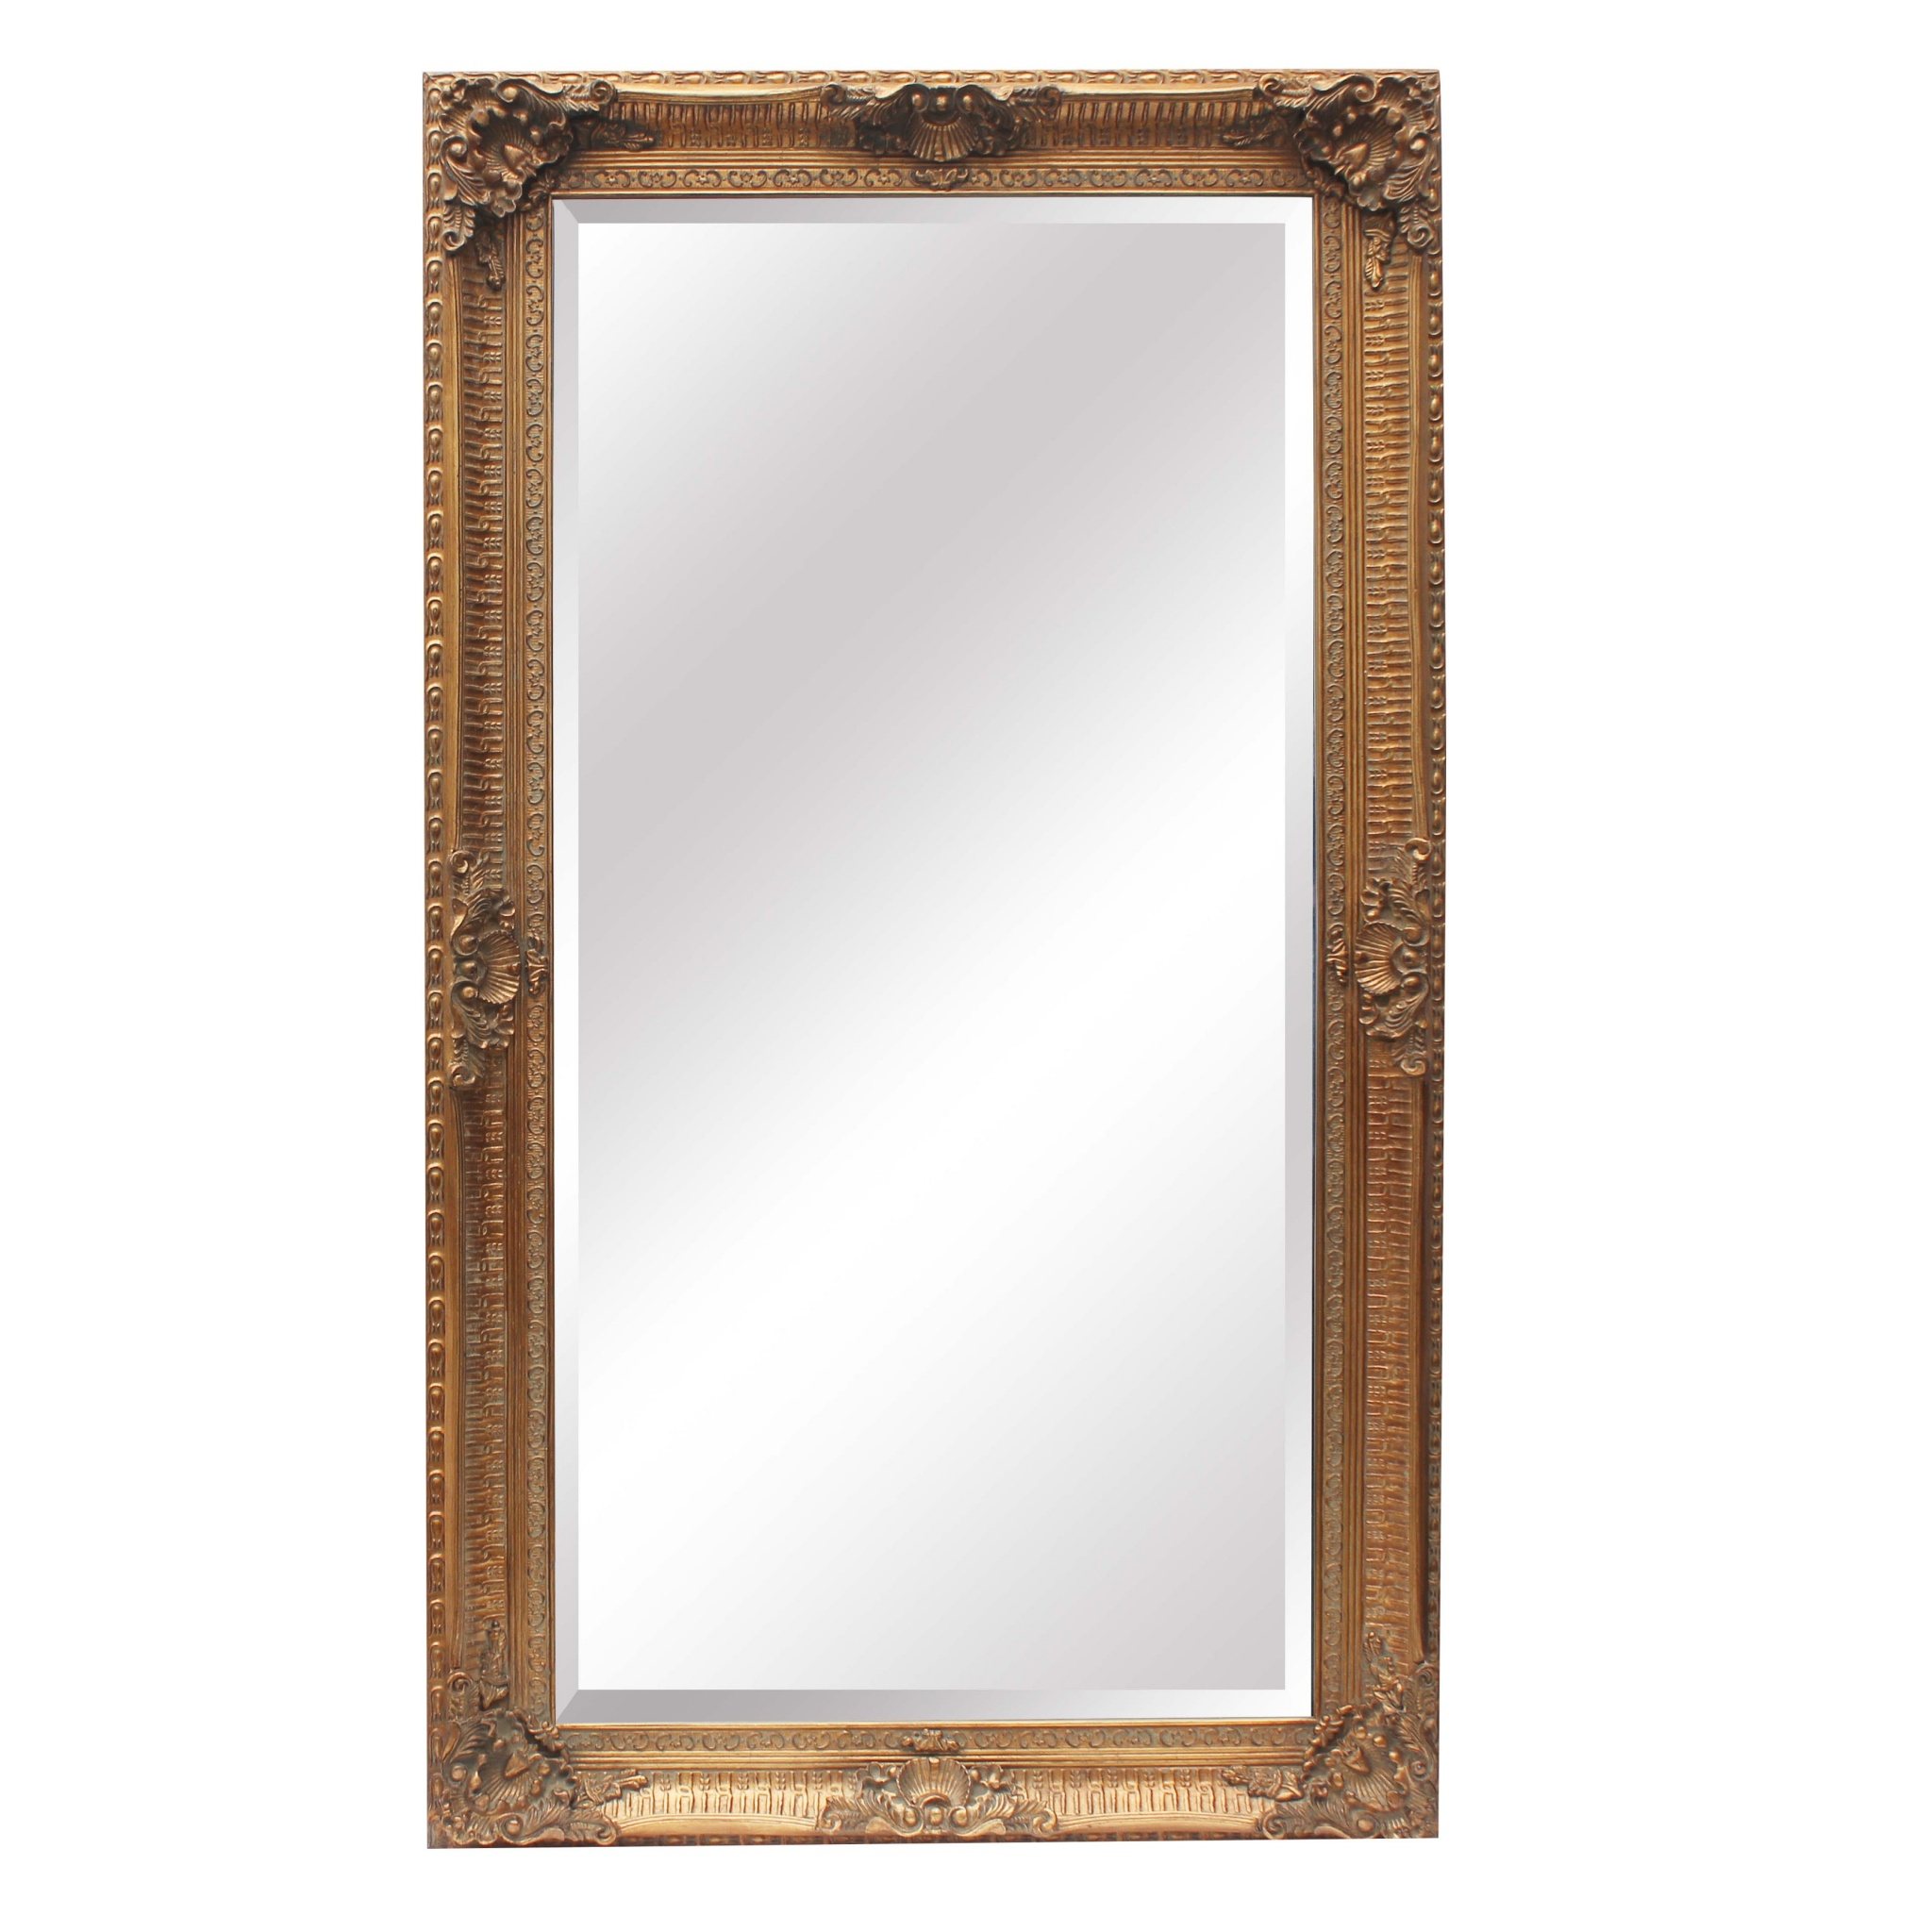 Francoise extra large ornate antiqued gold mirror la for Oversized mirror